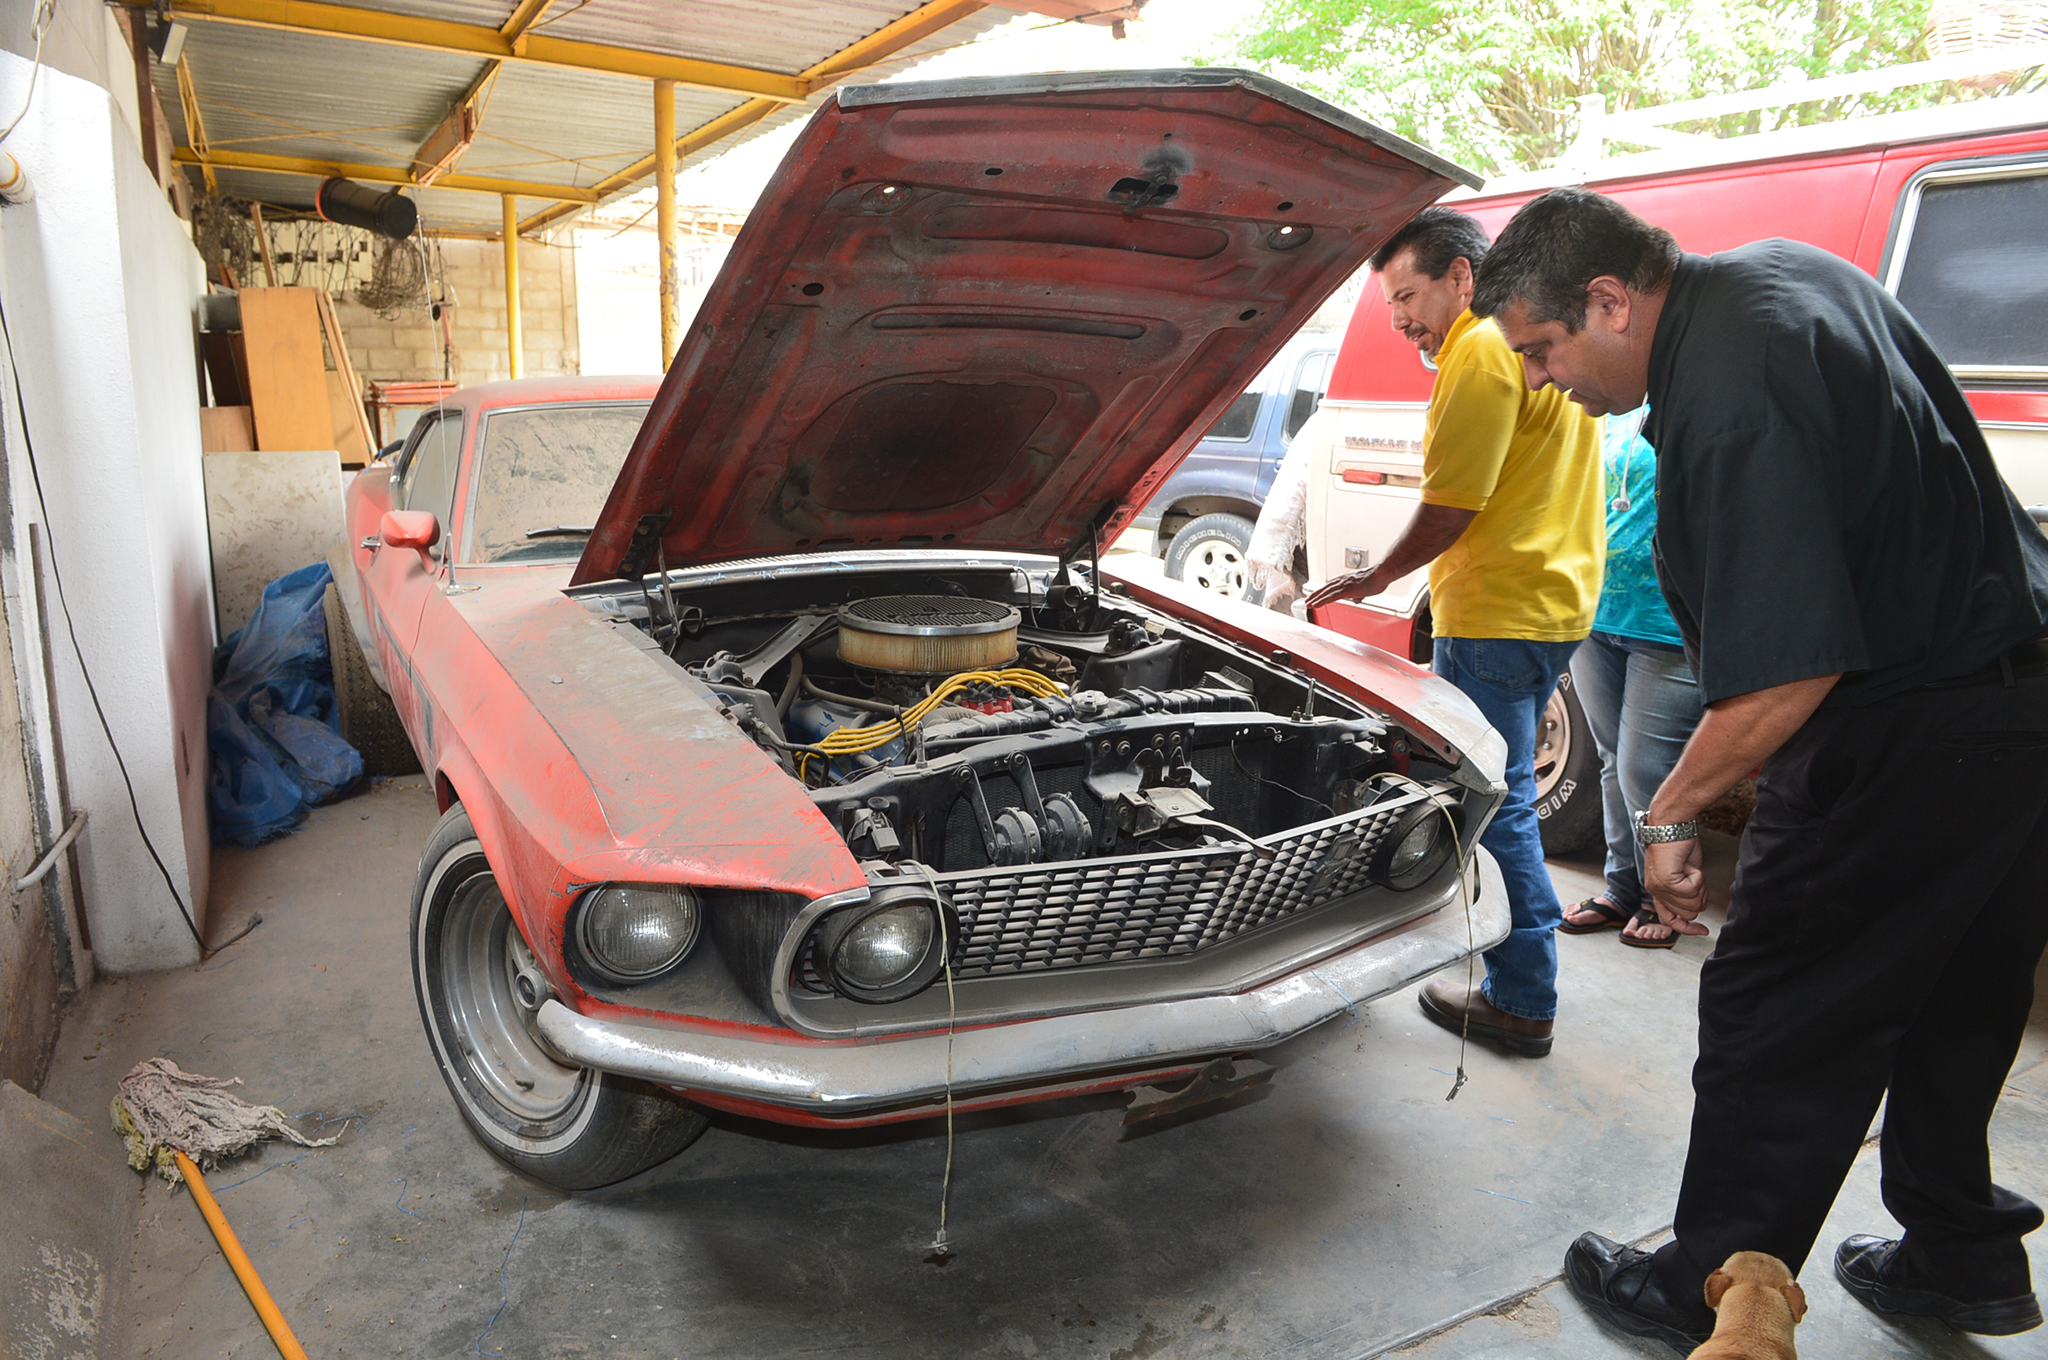 Michael opened the hood to see the original Boss 302 had been replaced with a regular 302. However, the lady who owned it said her father had the original Boss 302 engine in Chihuahua.